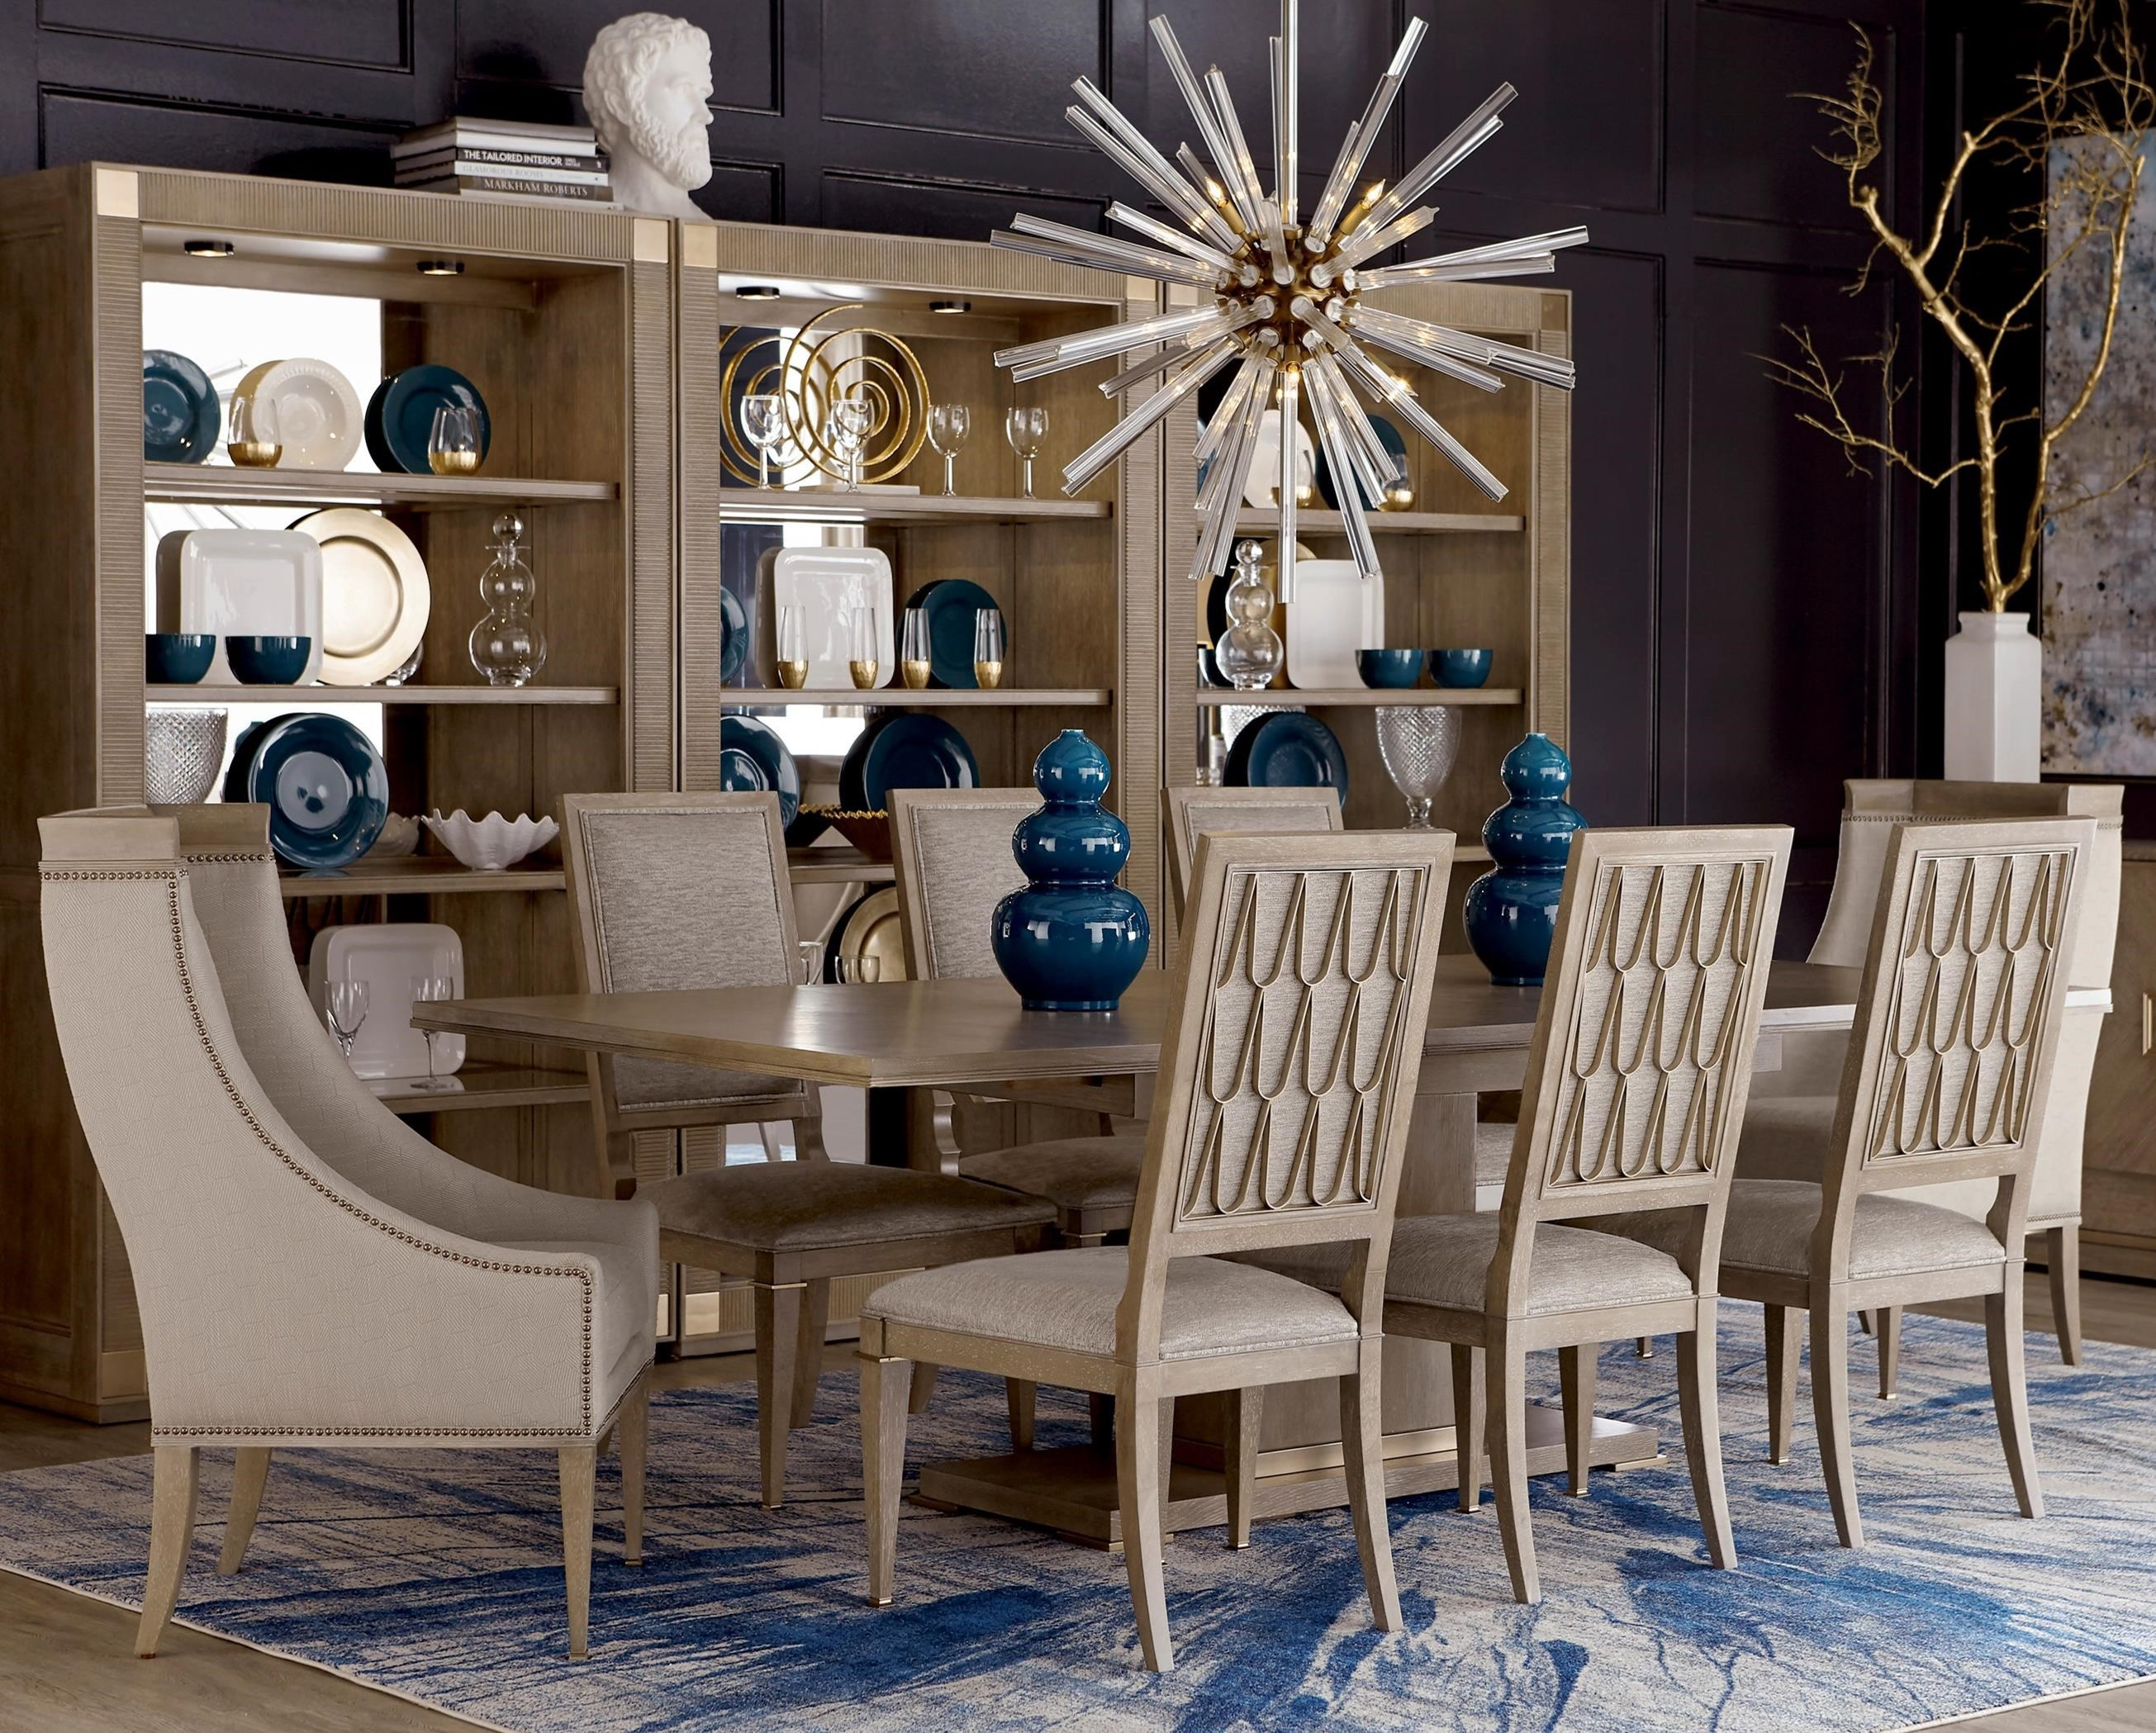 Cityscapes 9-Piece Bedford Rectangular Dining Table Set by A.R.T. Furniture Inc at Baer's Furniture